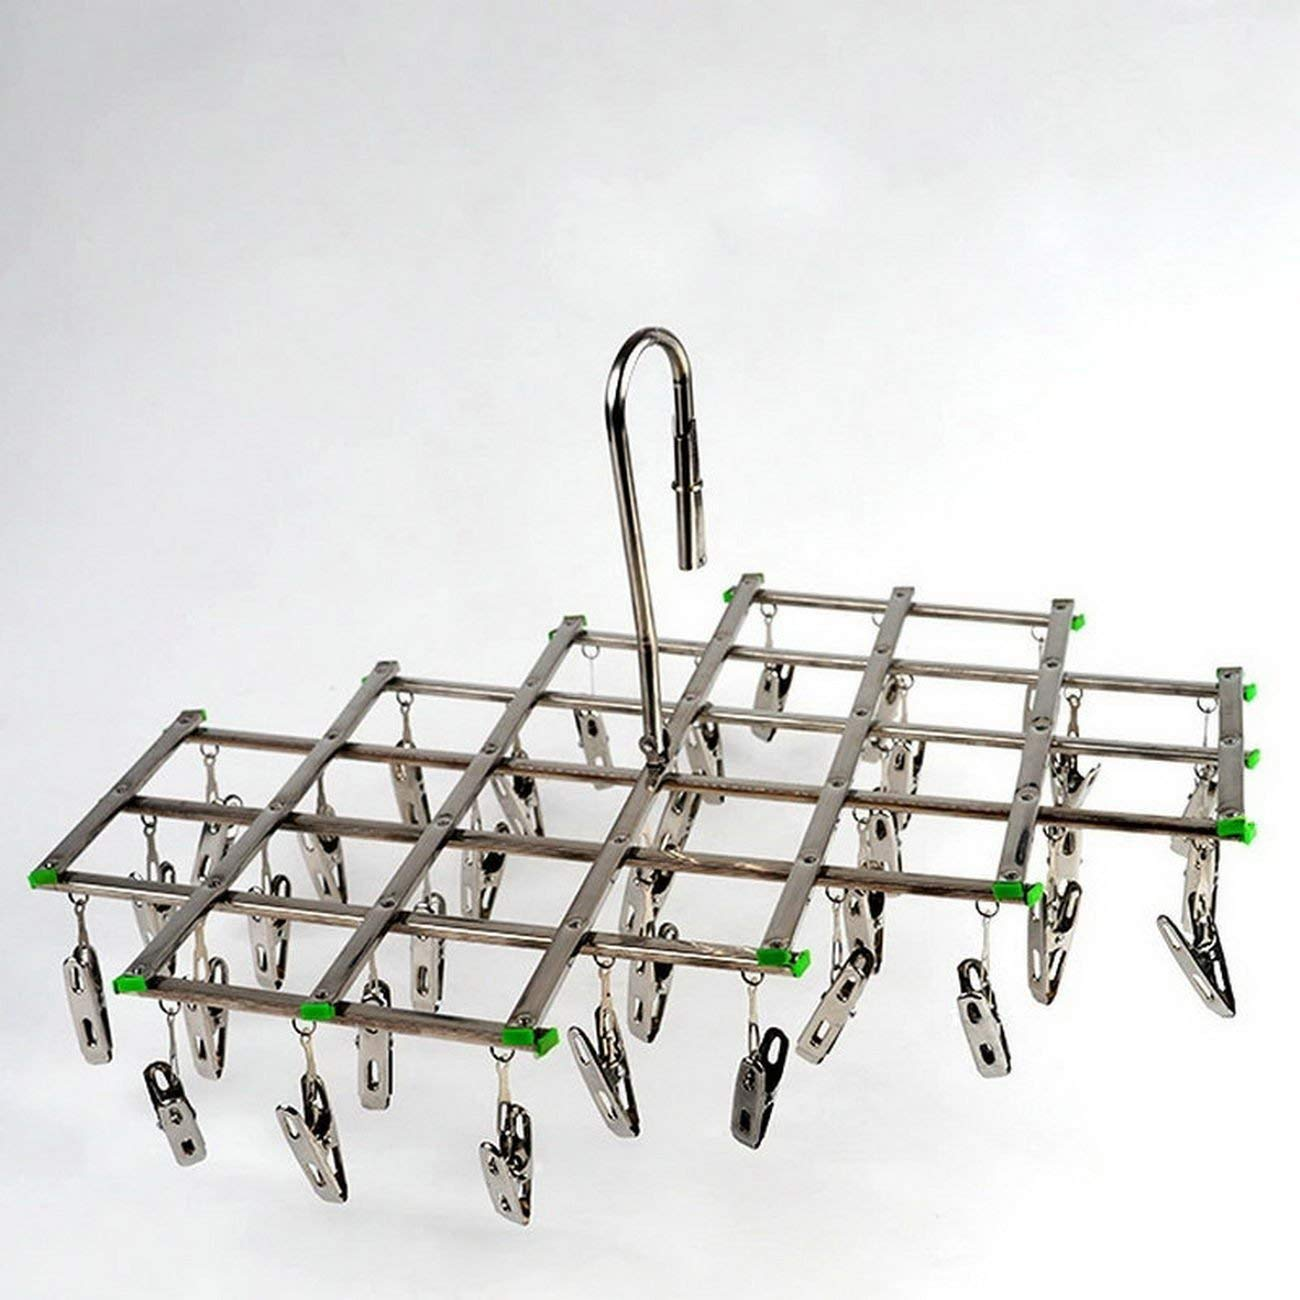 stainless steel racks folding hanger stainless steel hanger socks rack 35 rack stainless steel multifunctional folder , stainless steel hanger, stainless steel clothes drying rack, multifunctional s